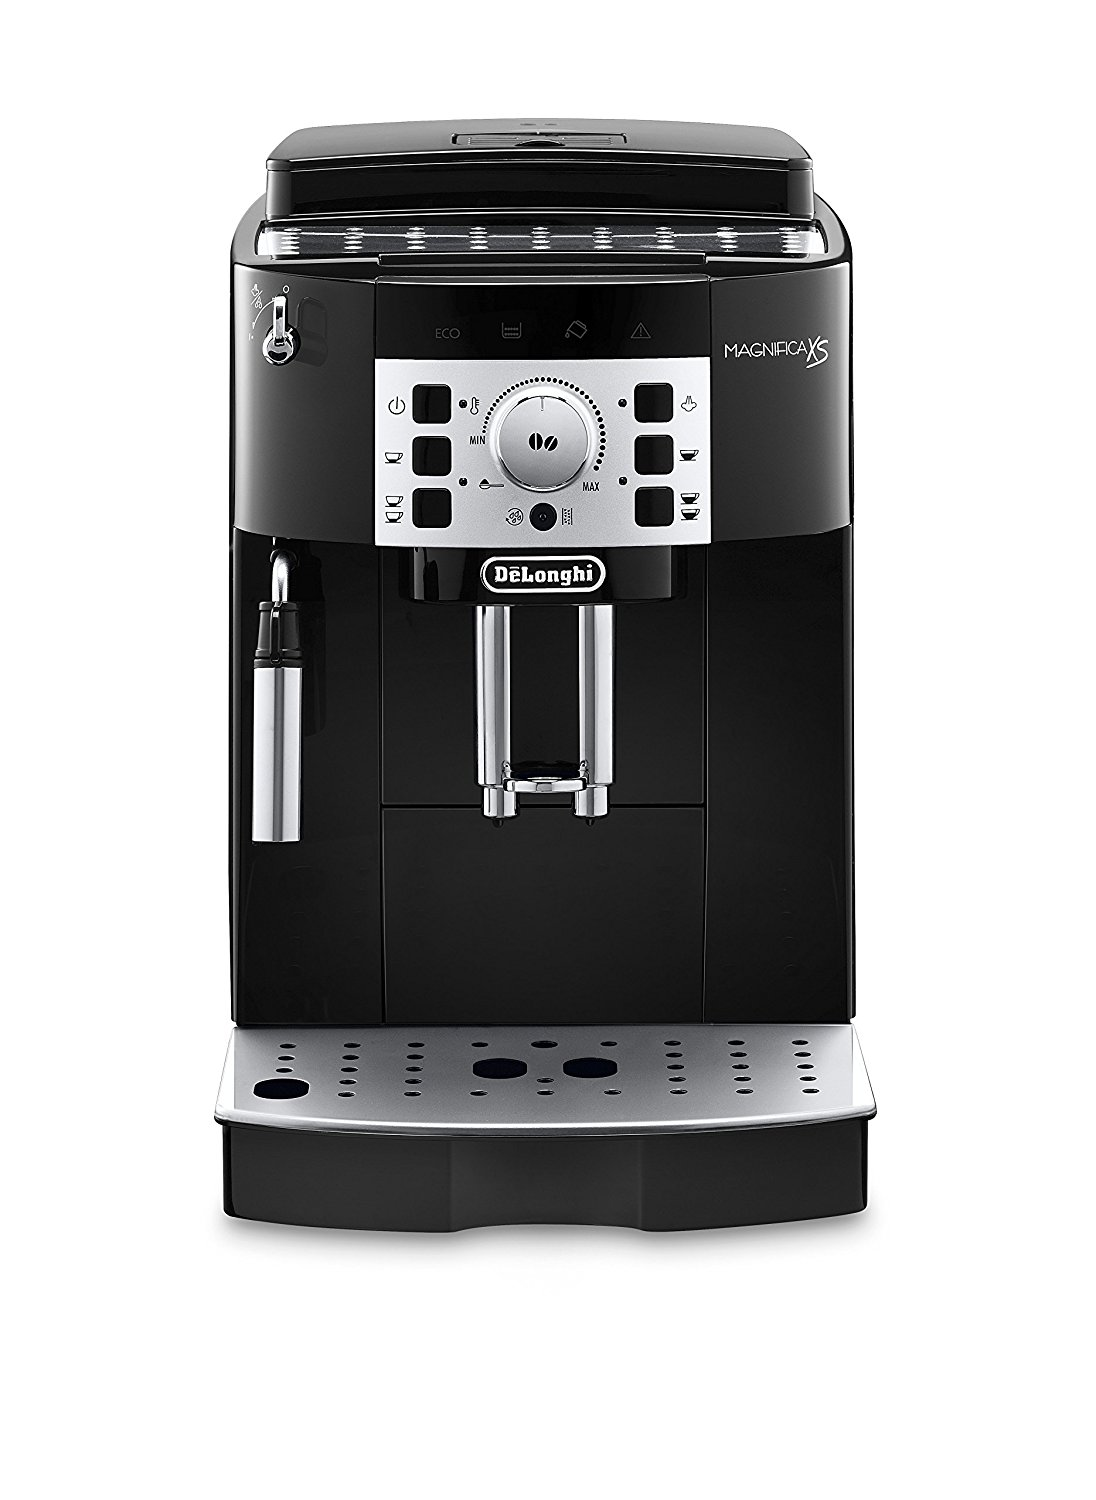 Delonghi Super Automatic Espresso, Latte and Cappuccino Machine with 60 Ounce Water Tank - 2 Colors Available